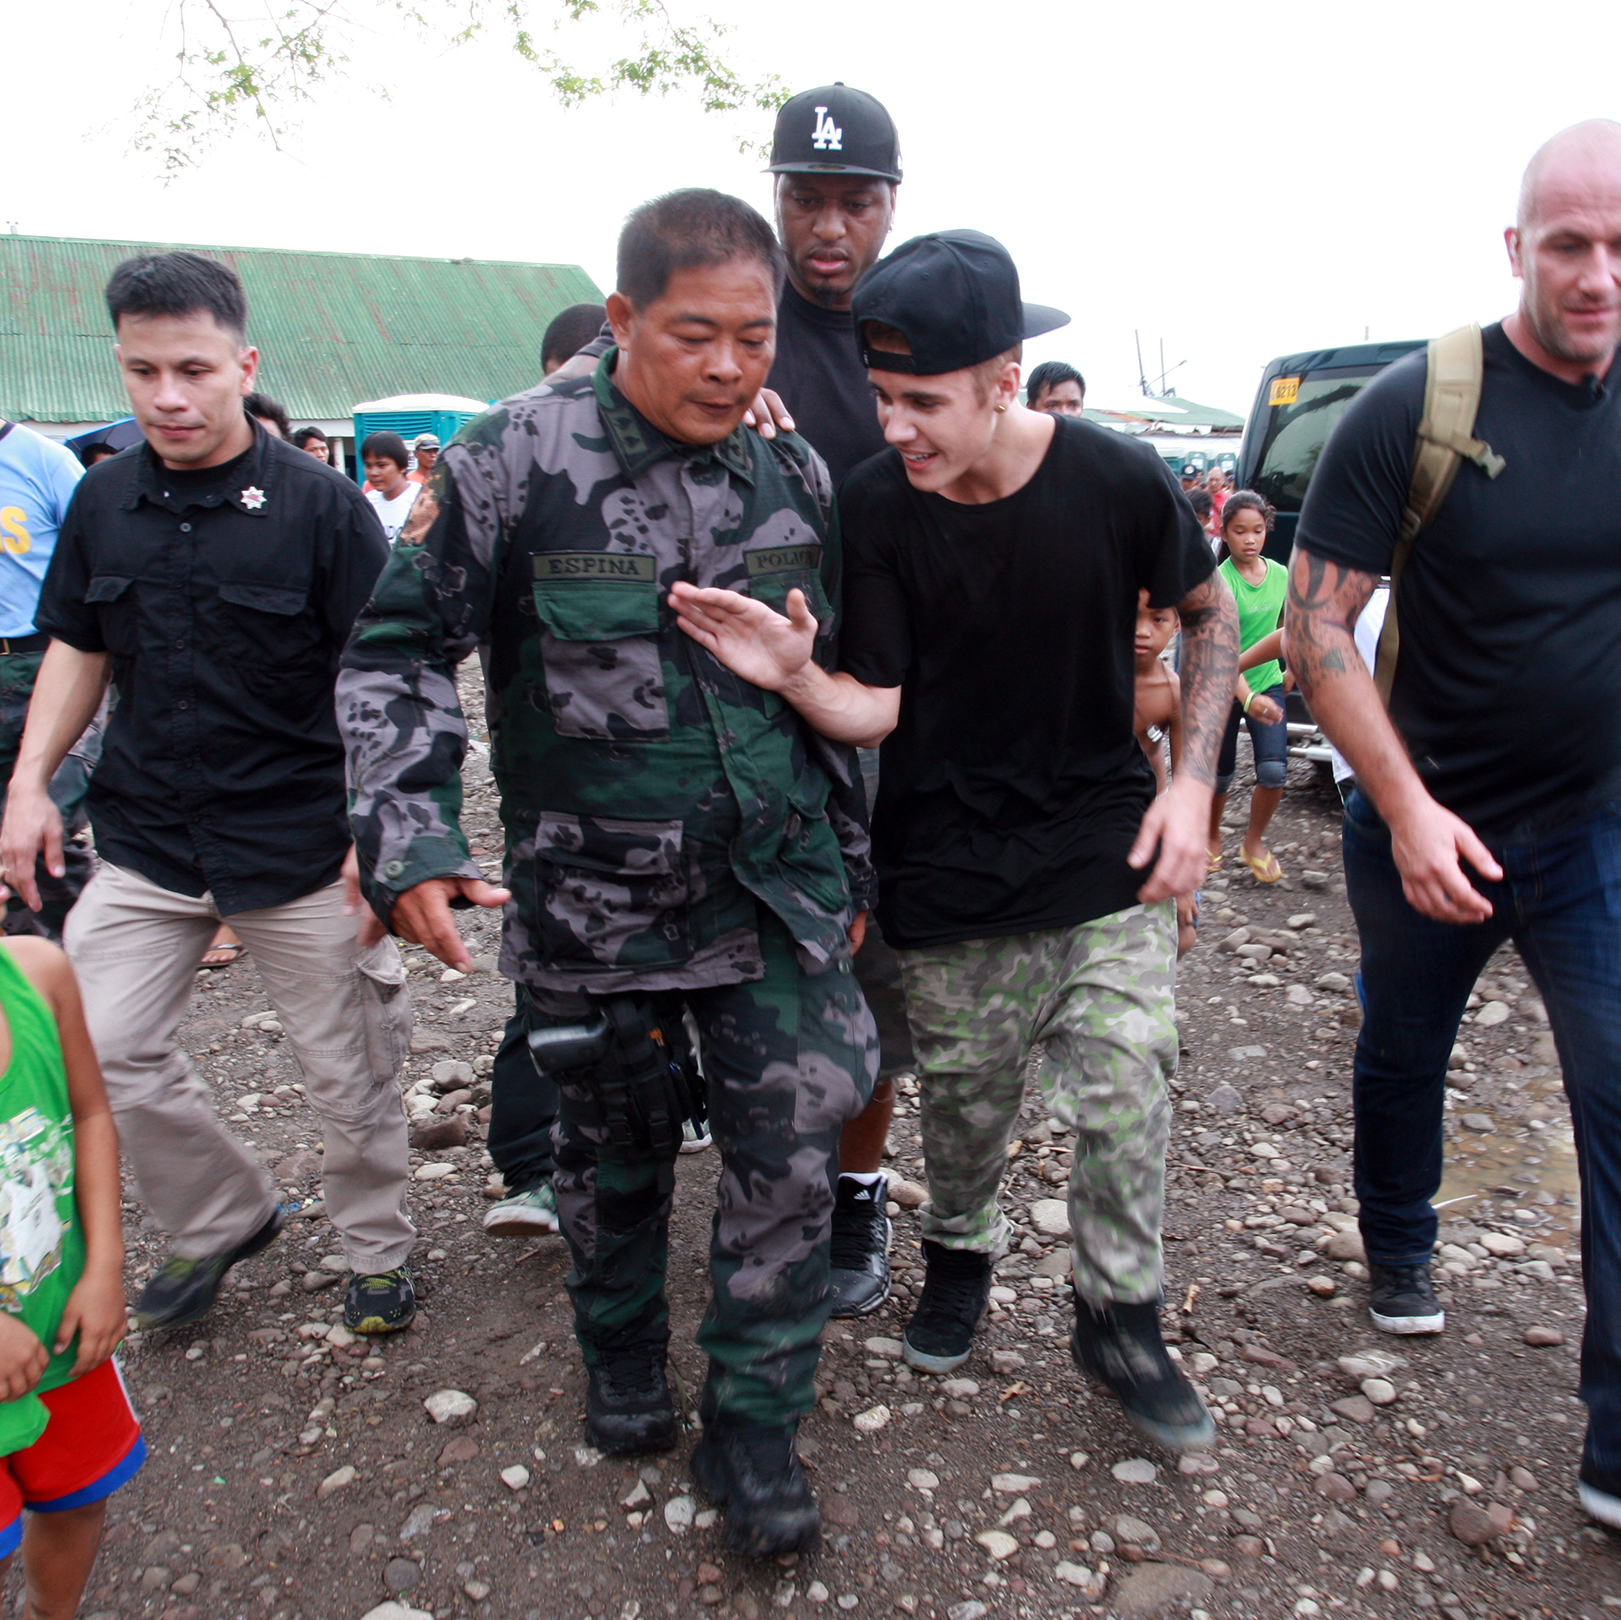 Justin Bieber may have a bad boy side, but the angelic Bieber launched a campaign to raise money for victims of Typhoon Haiyan, which struck the Philippines last year. Here, he visits a Filipino elementary school. And he took the Ice Bucket Challenge -- twice. And urged Beliebers to do the same.